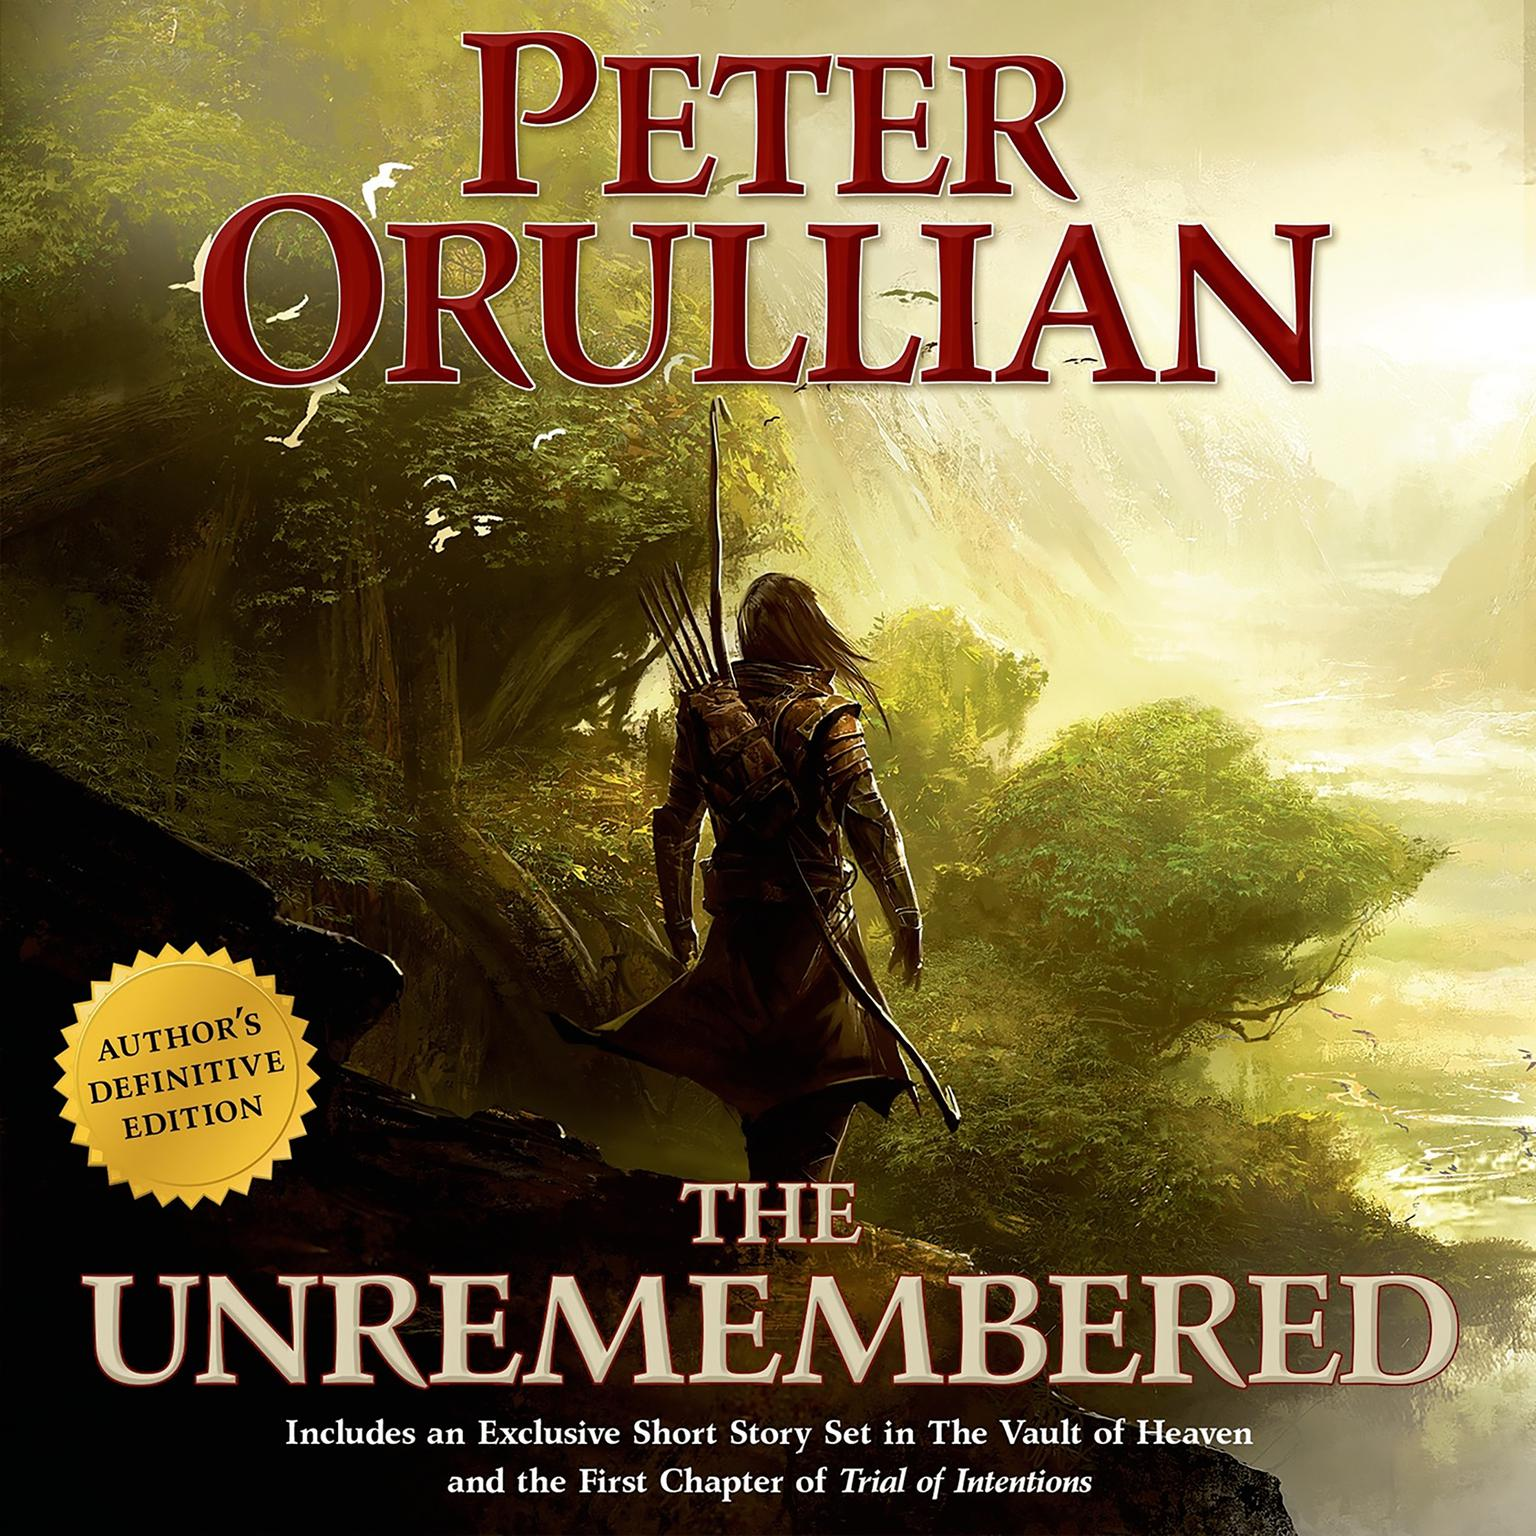 Printable The Unremembered: Author's Definitive Edition Audiobook Cover Art